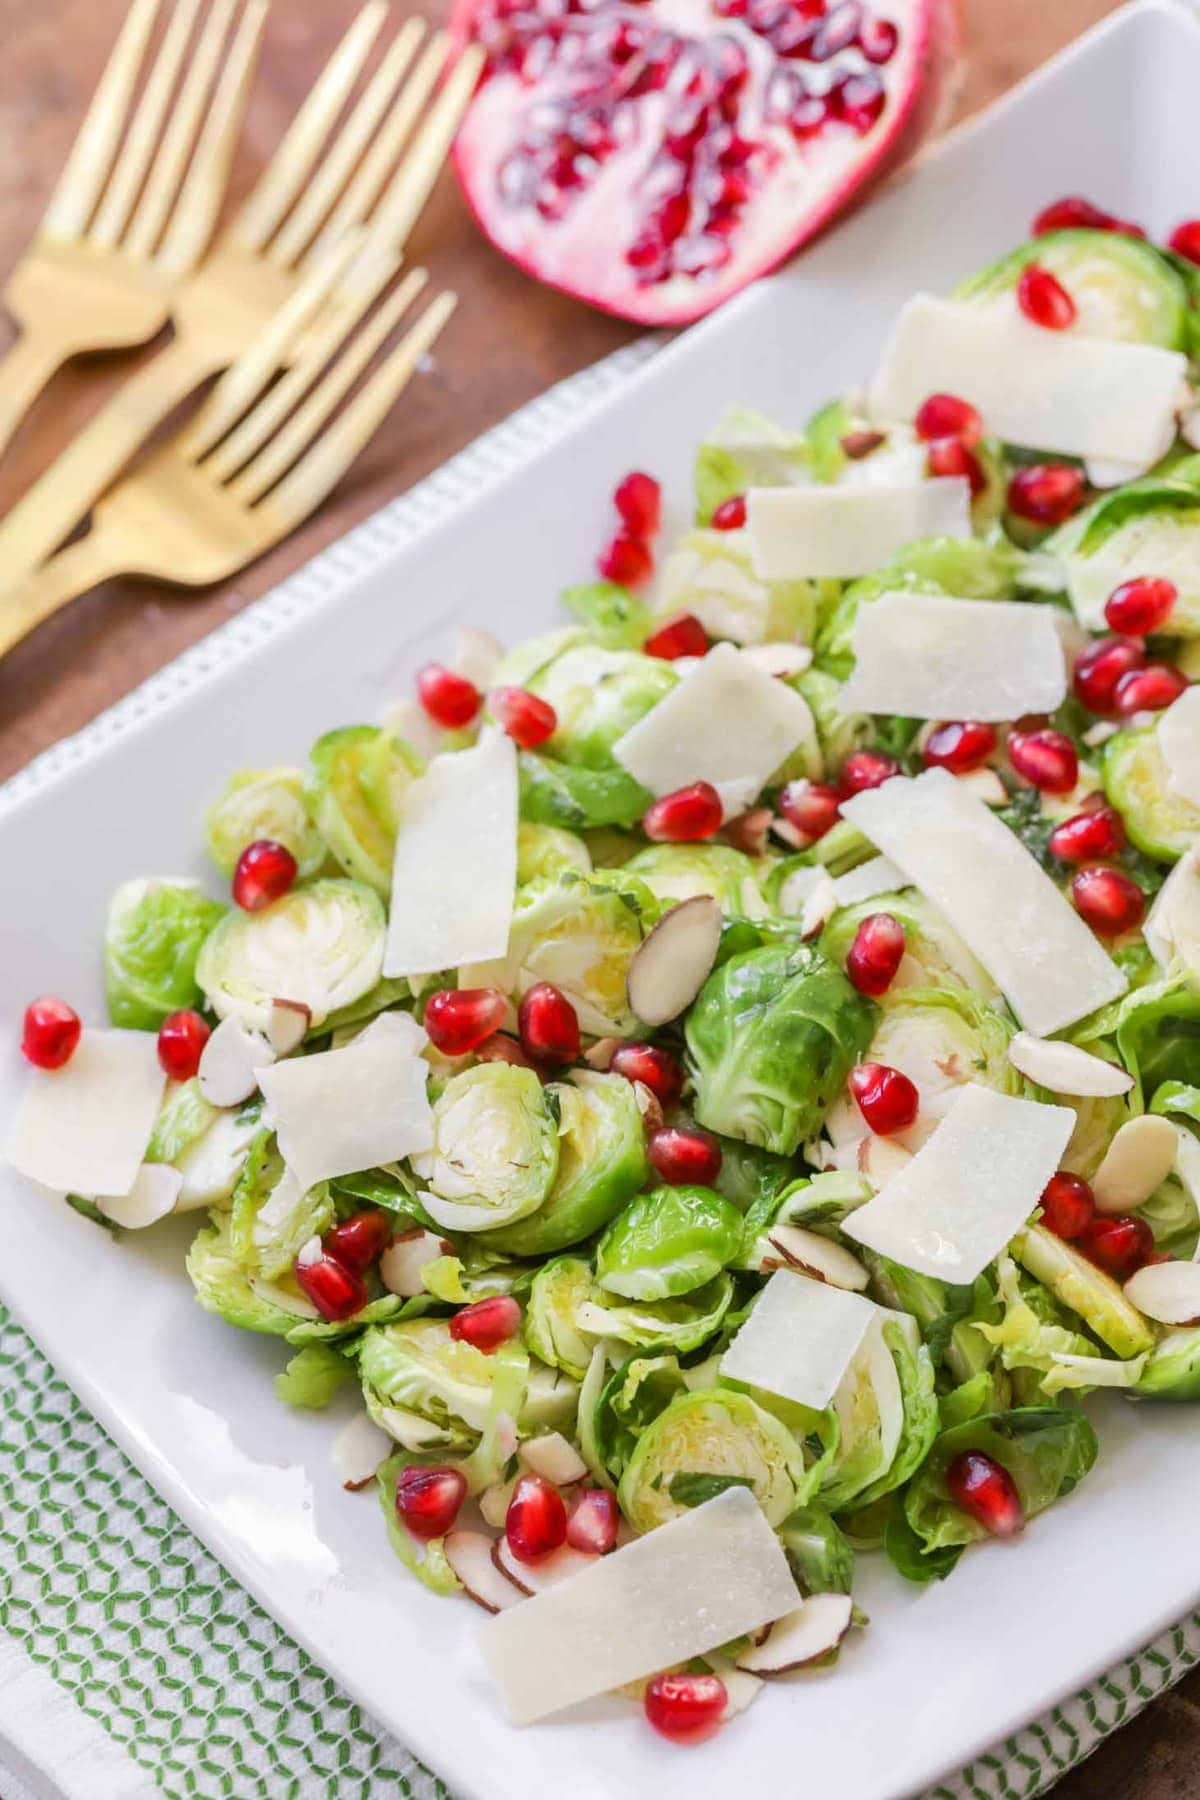 Brussel Sprout Salad Recipe on plate